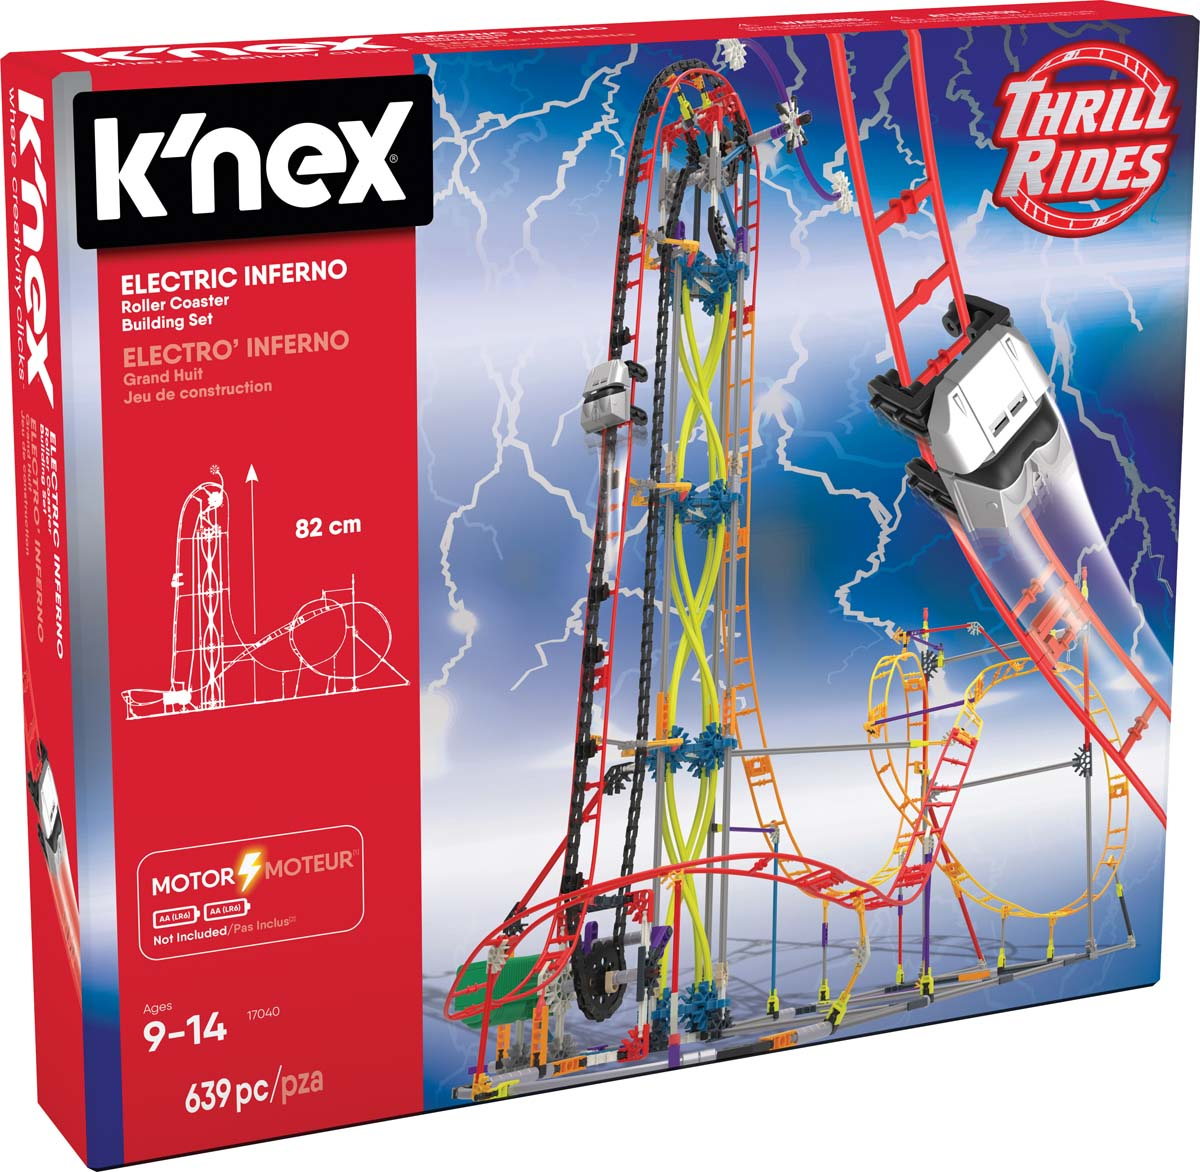 K Nex Thrill Rides Electric Inferno Roller Coaster Building Set Knex Co Uk Where Creativity Clicks